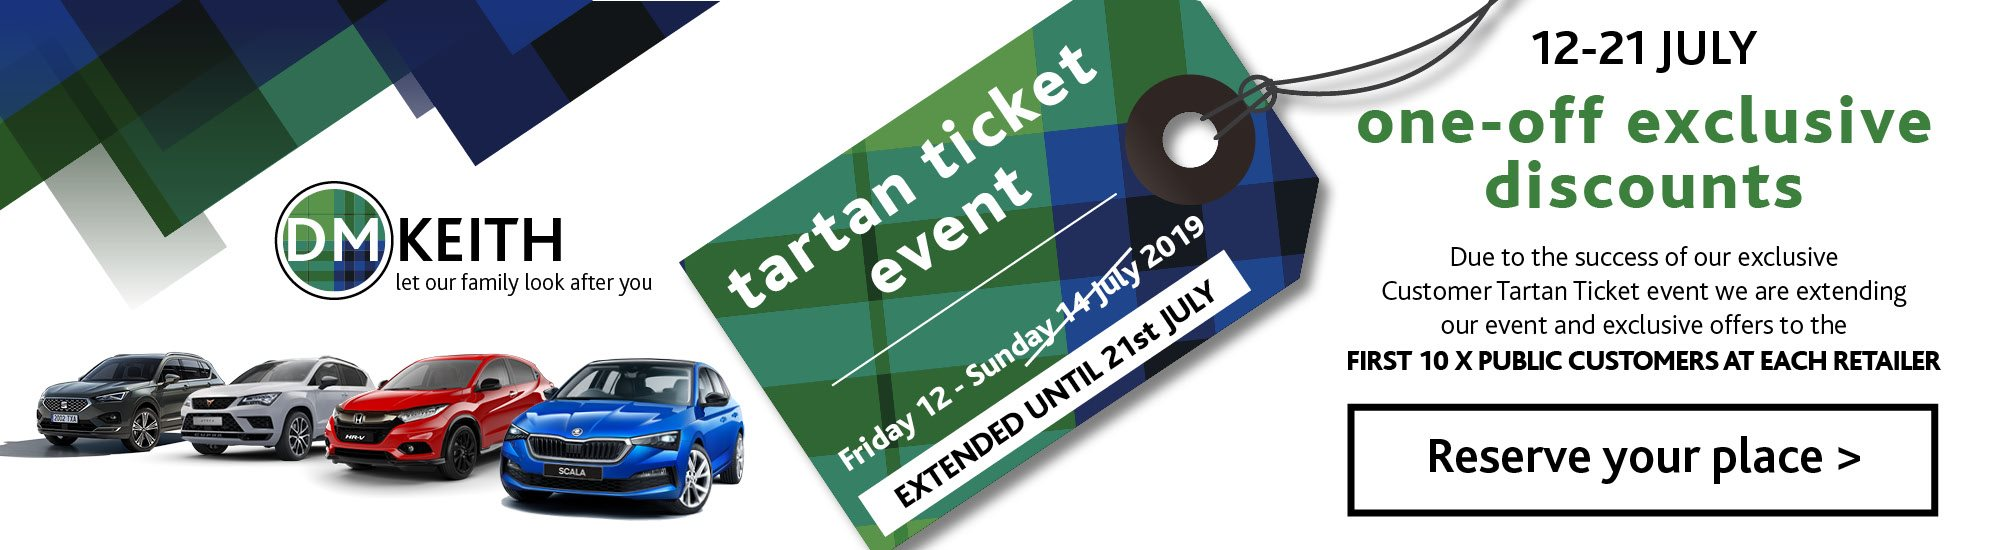 Tartan Ticket Event - new car special offers  - used car special offers